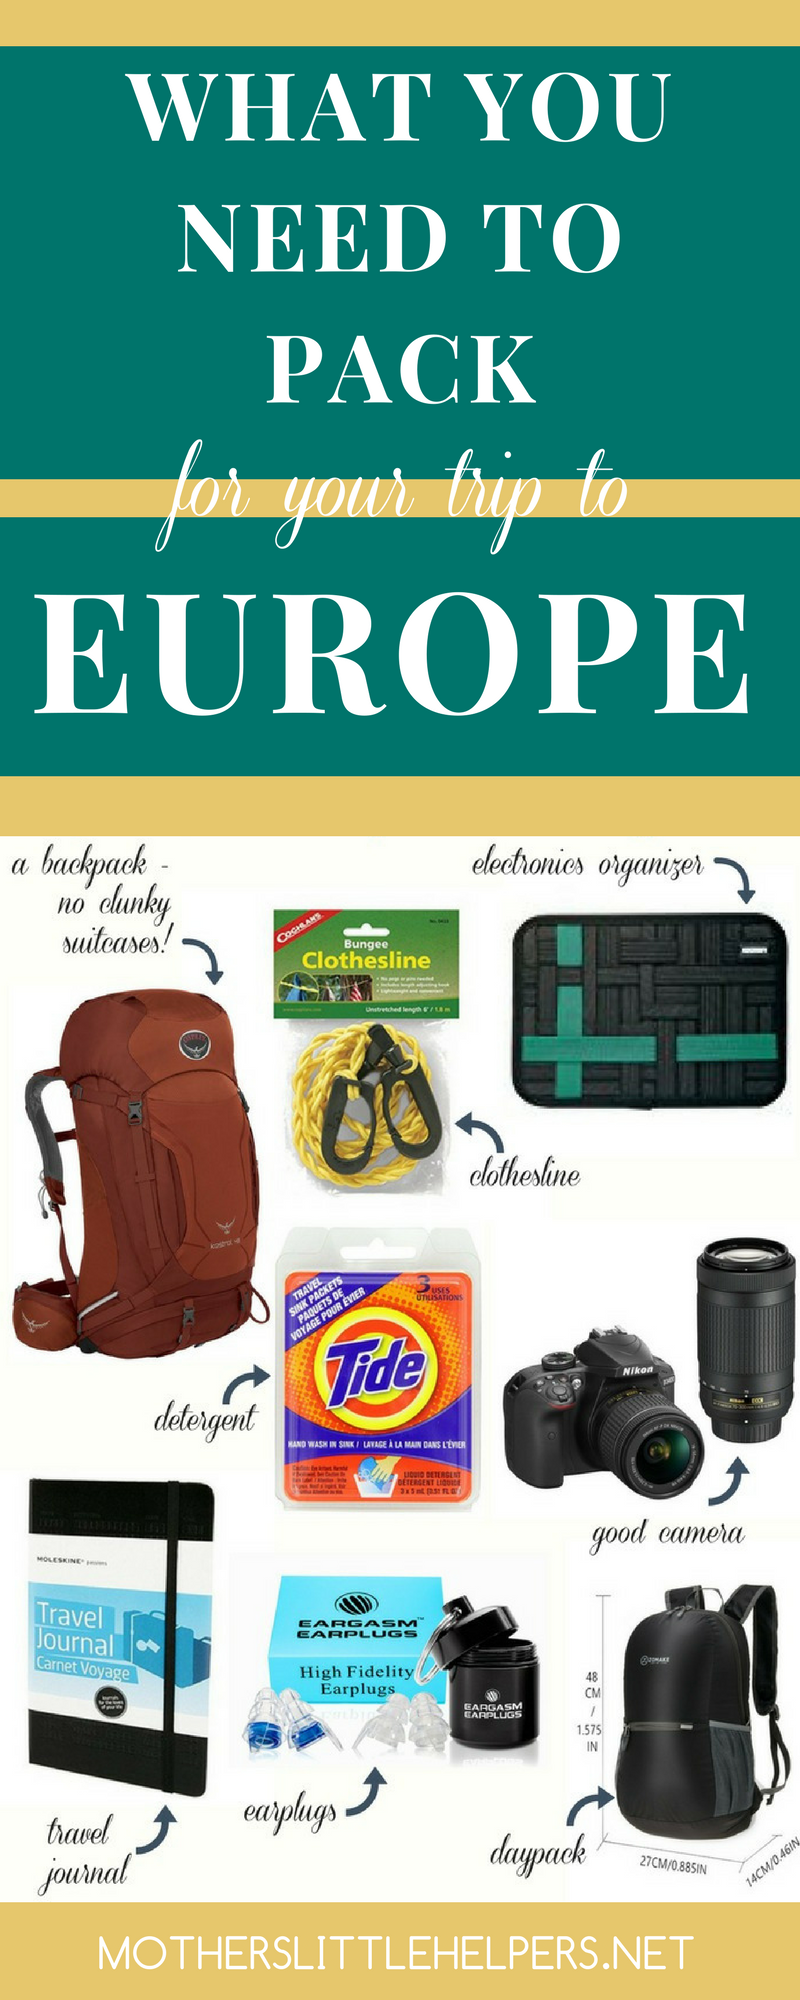 Are you planning a trip to Europe and are searching for some advice on what to pack? These FREE packing lists will help you pack efficiently for an infinite length of travel.